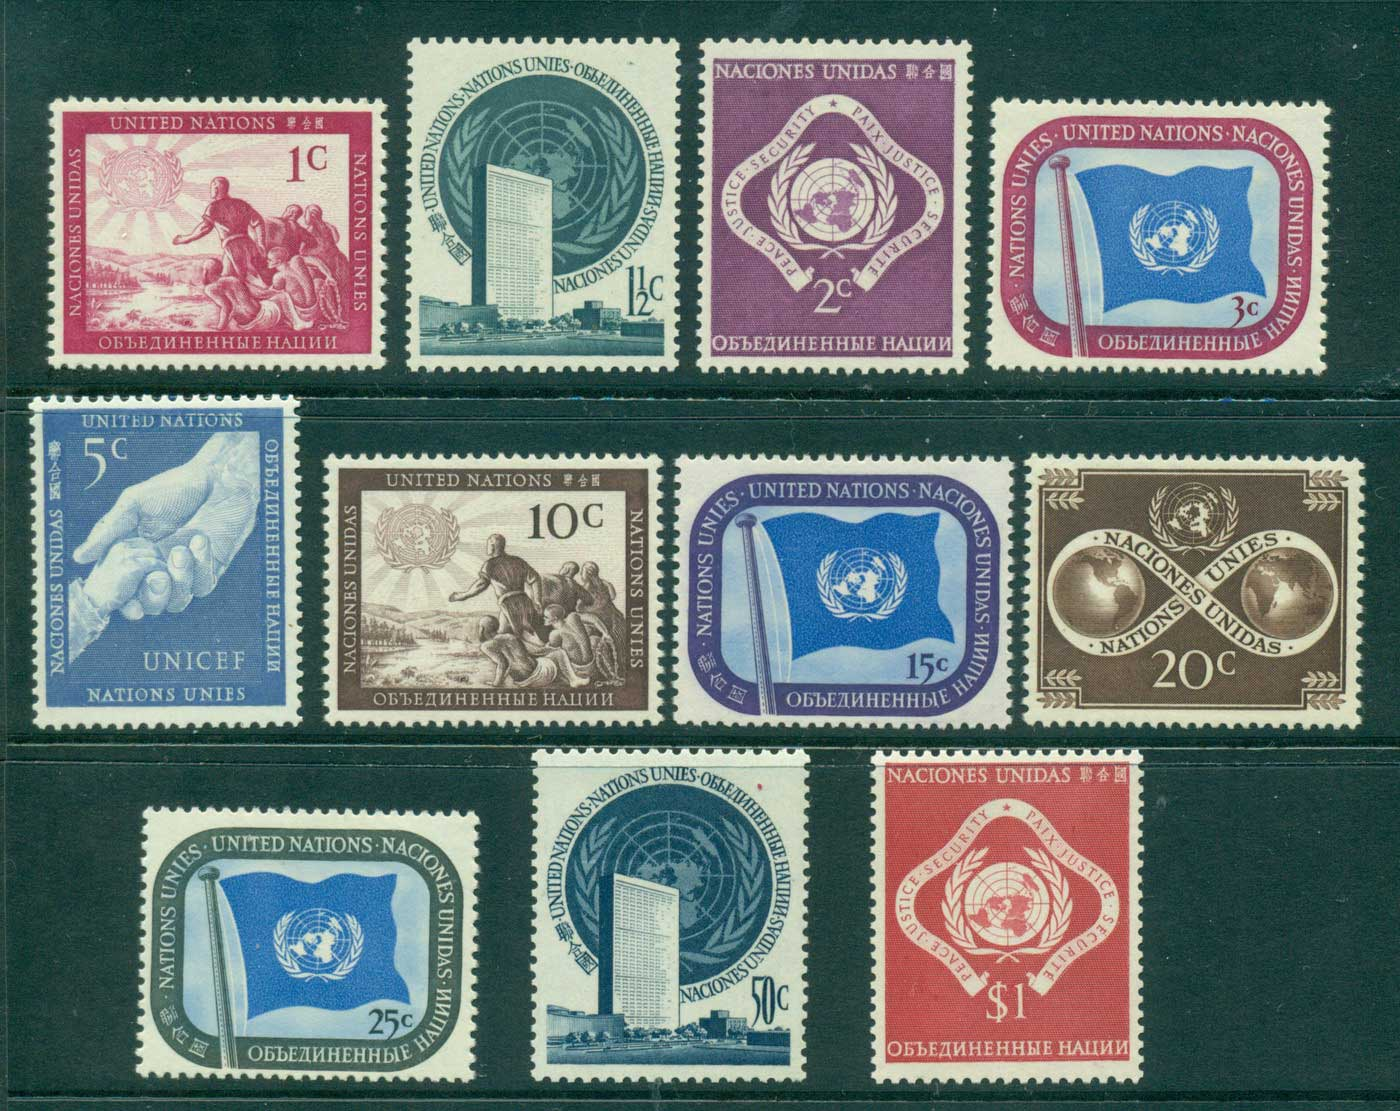 UN New York 1951 Definitives (11) MUH lot40846